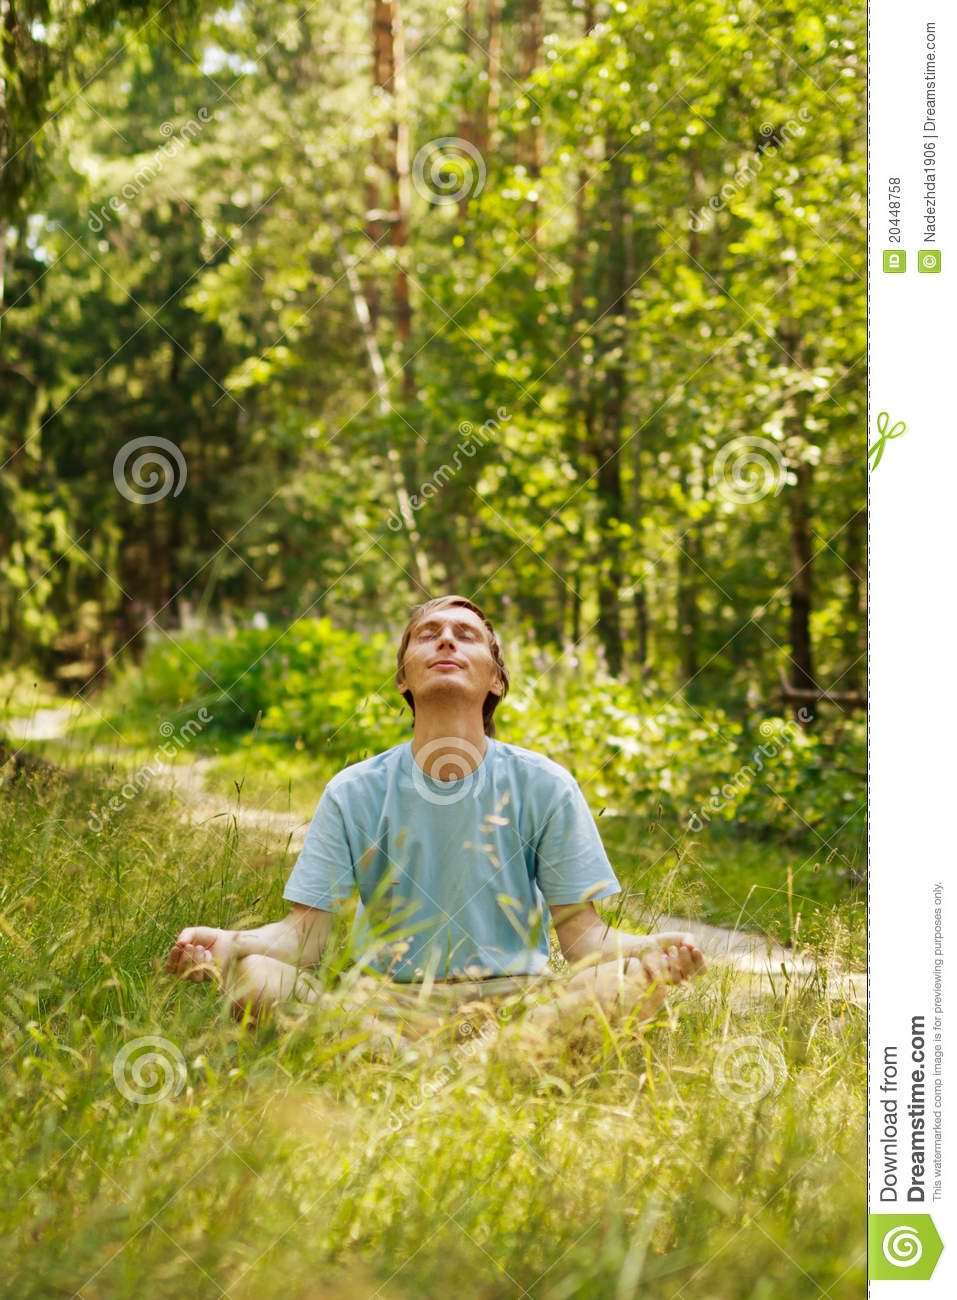 Old Woman Doing Yoga Meditation Exercises In Grass High